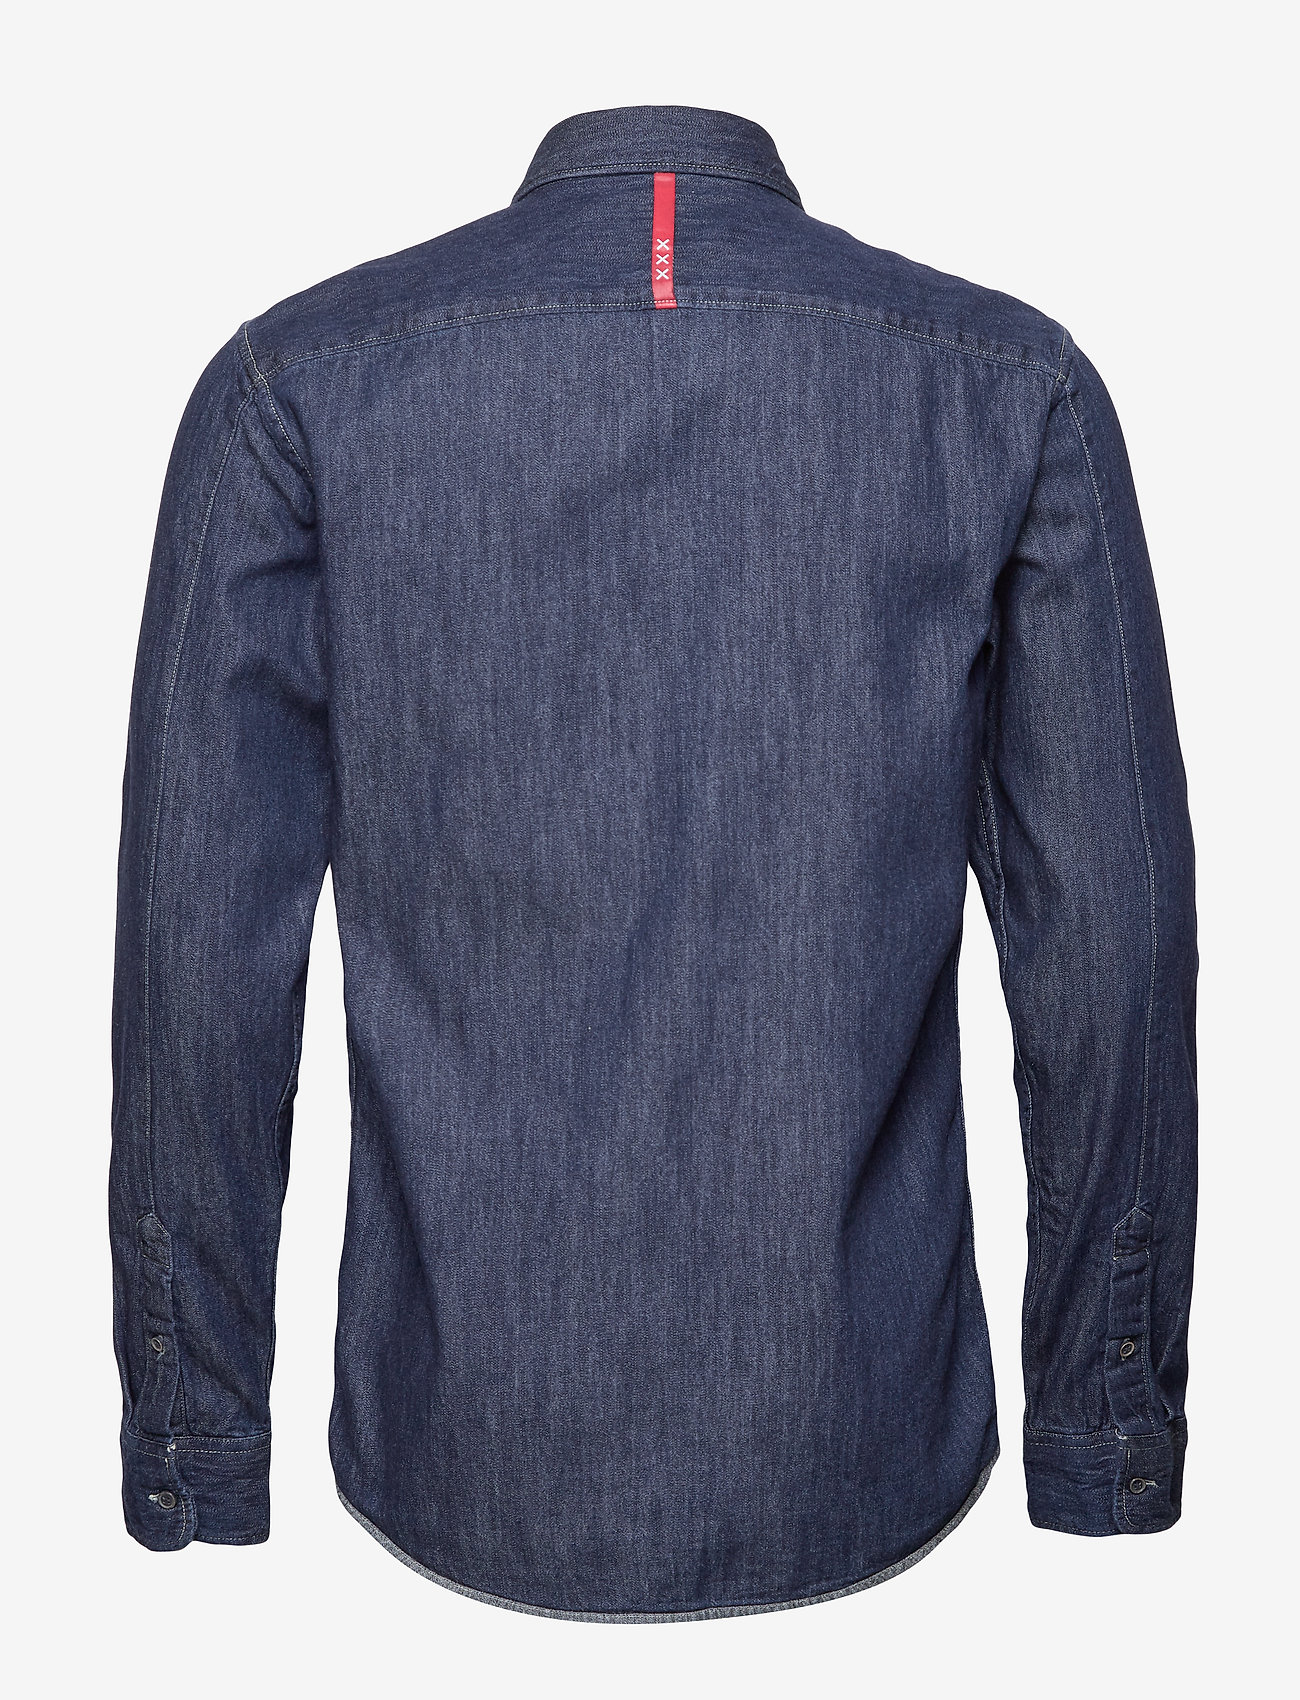 Scotch & Soda - Ams Blauw regular fit denim shirt with pochet pocket detail - peruspaitoja - indigo blue - 1